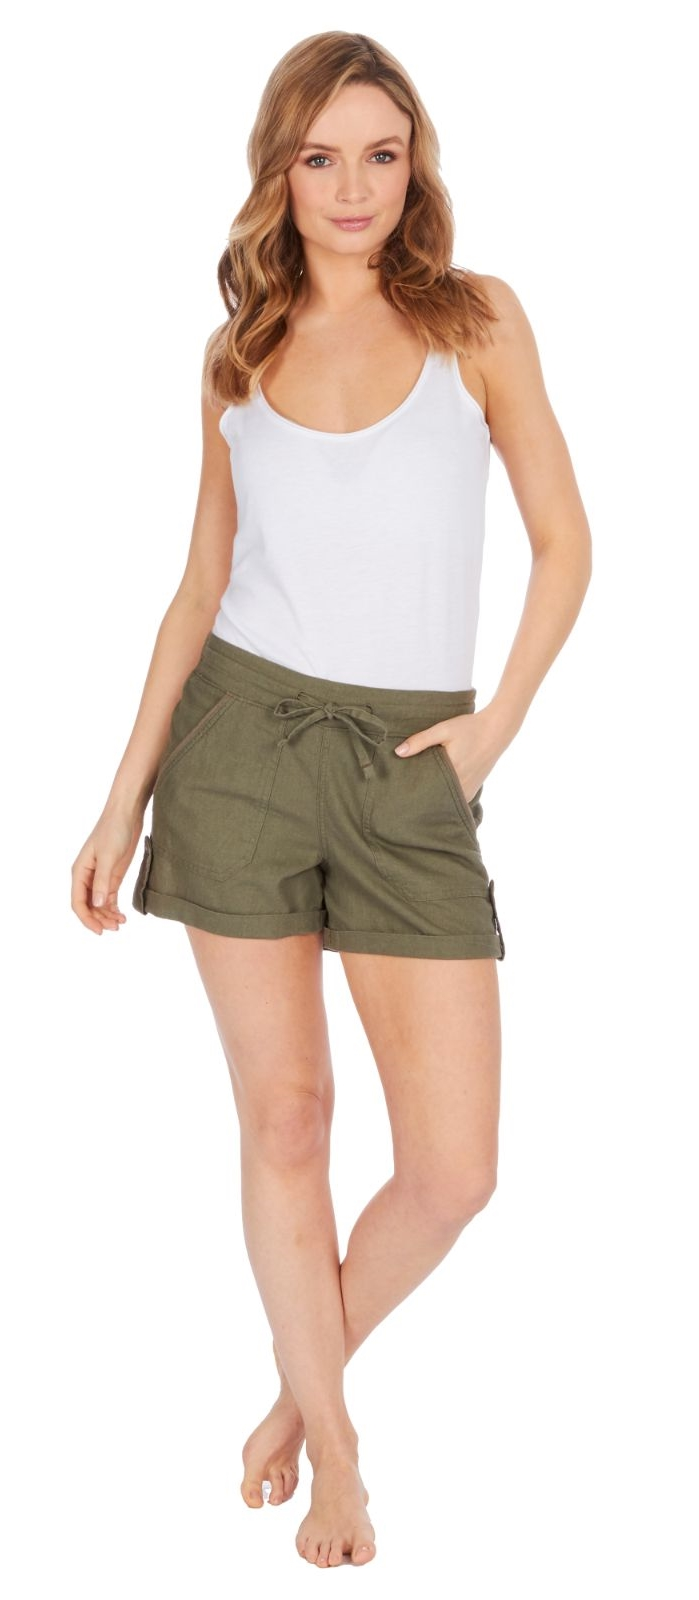 New Women Summer Beach White Shorts from South size:8-10